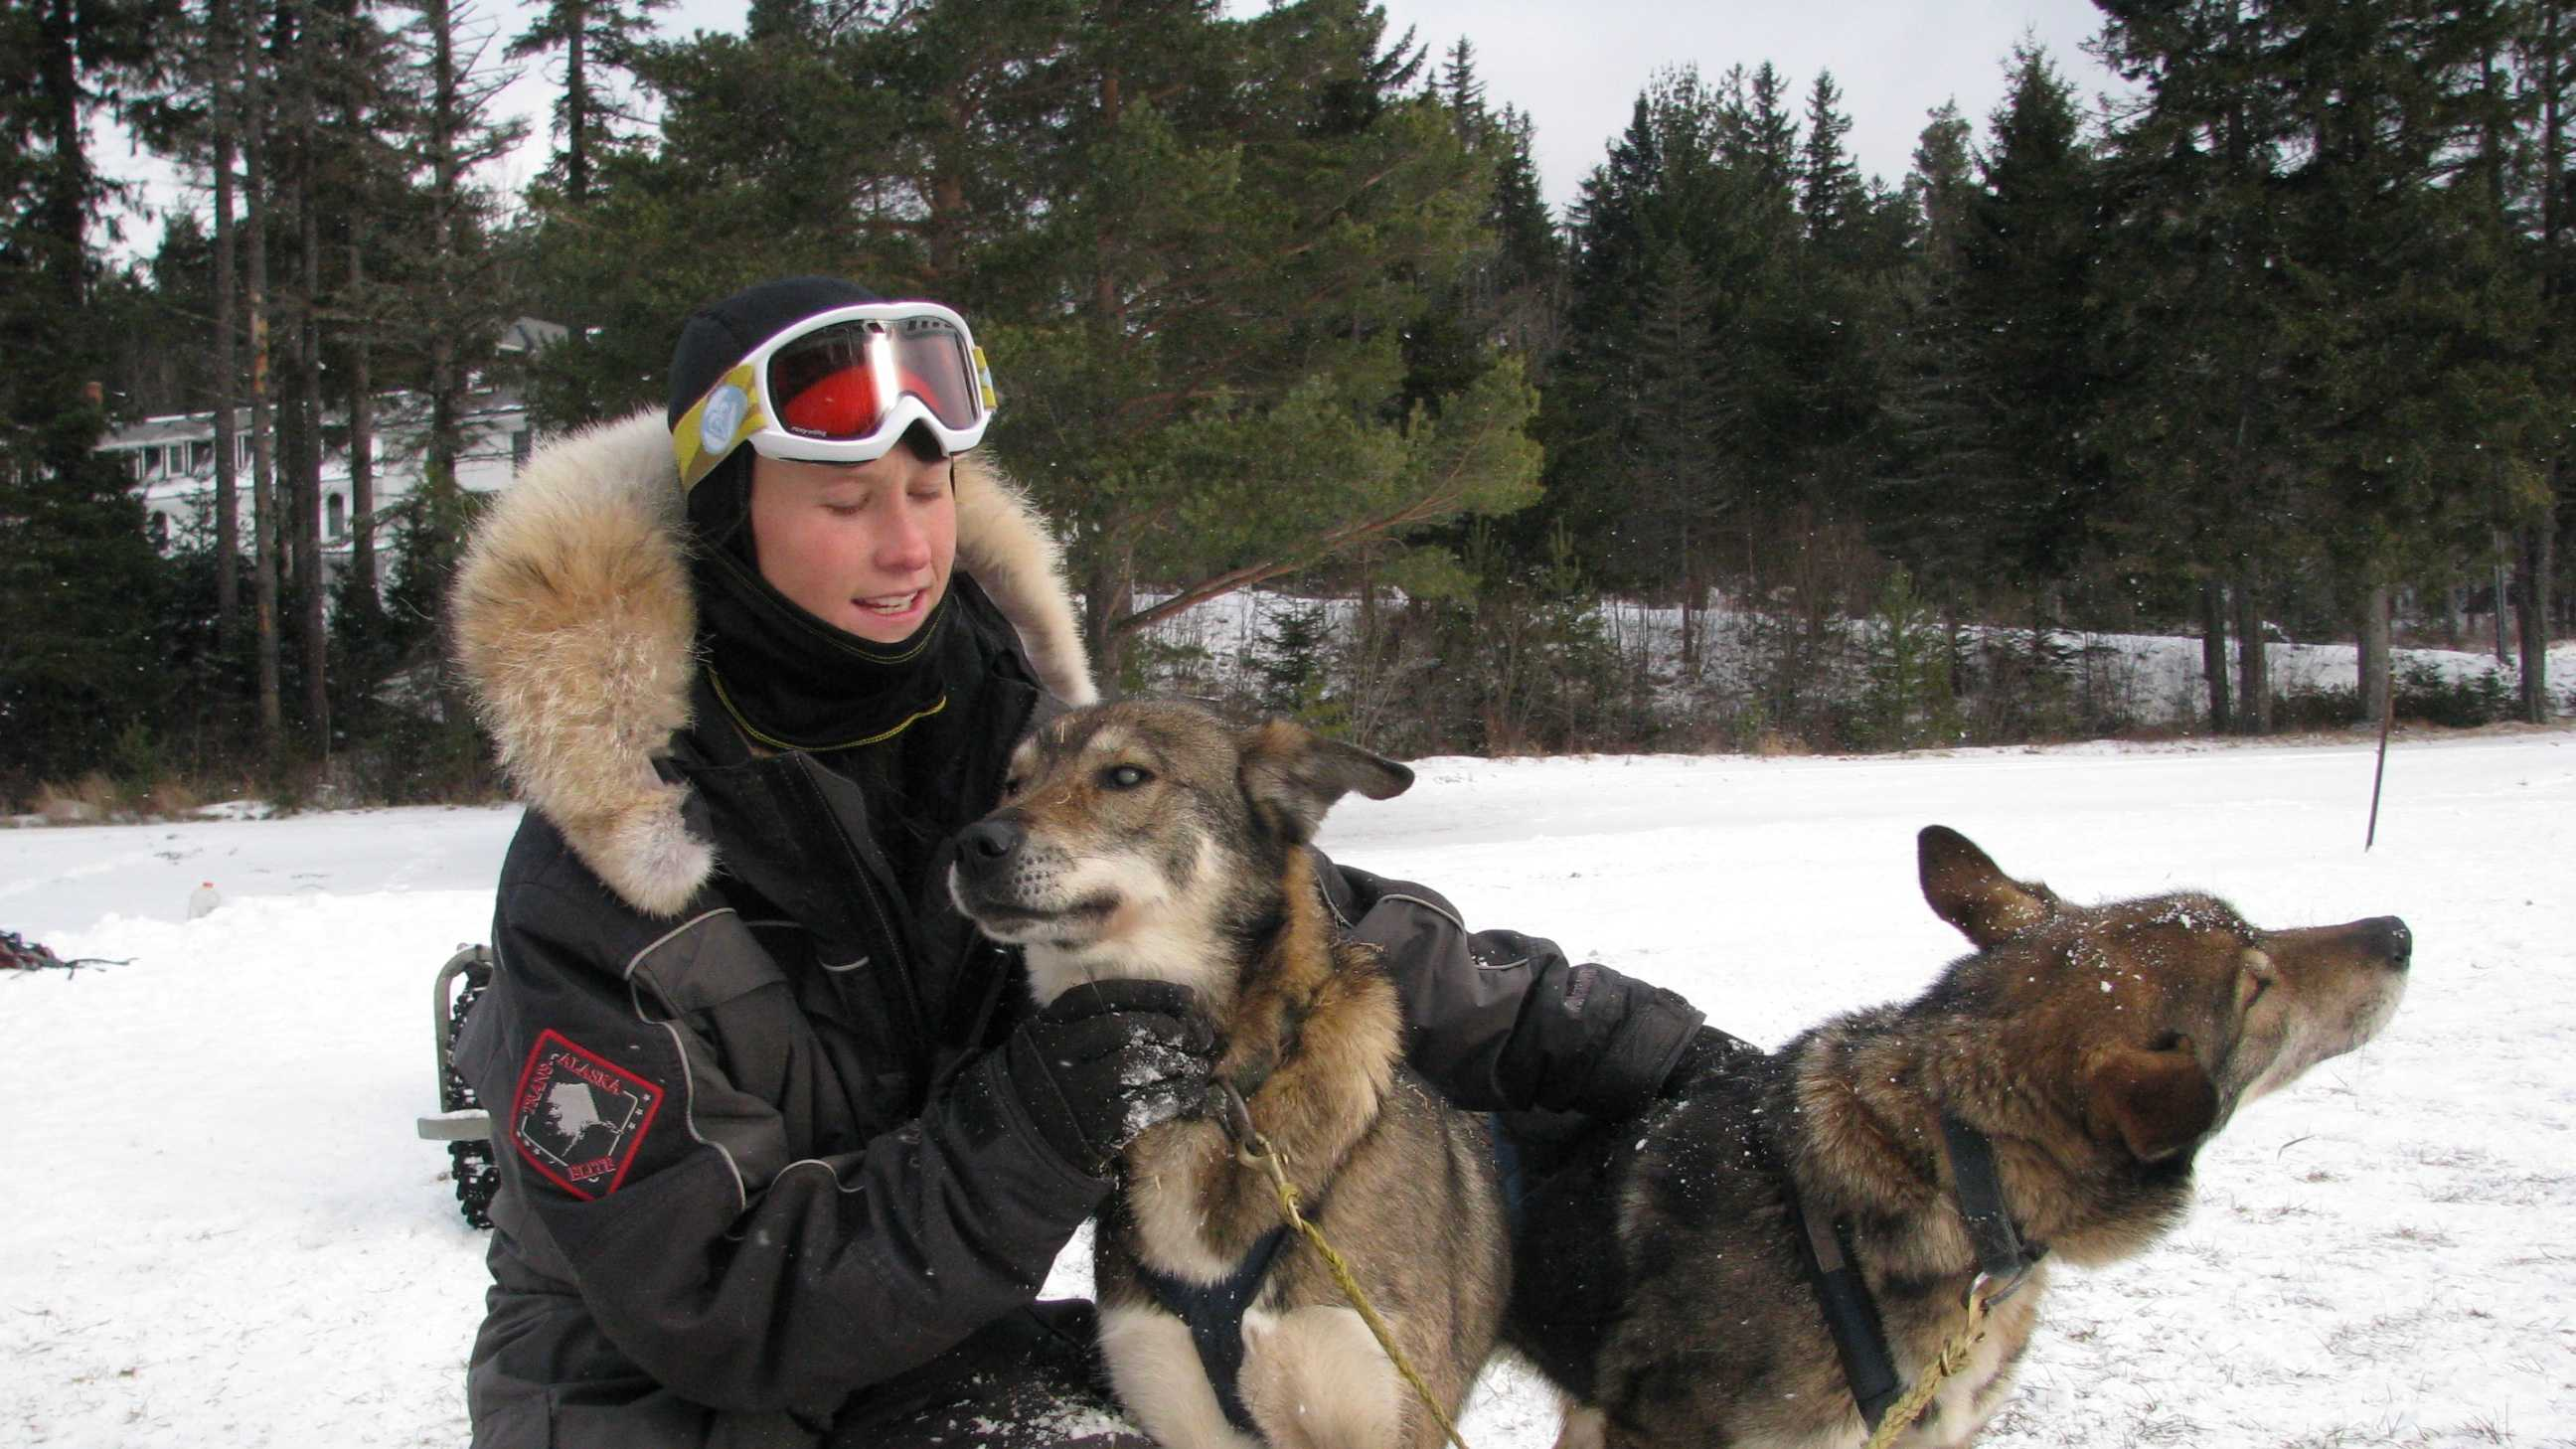 AJ Norton, a musher at Muddy Paw sled dog kennel in Jefferson, gives some love to Gonzo, who is blind. Poncho, his brother at right, provides him confidence to continue to do what he loves most: run. They are 7-year-old Alaskan Huskies who were hard at work recently at the Omni Mount Washington Hotel in Bretton Woods.